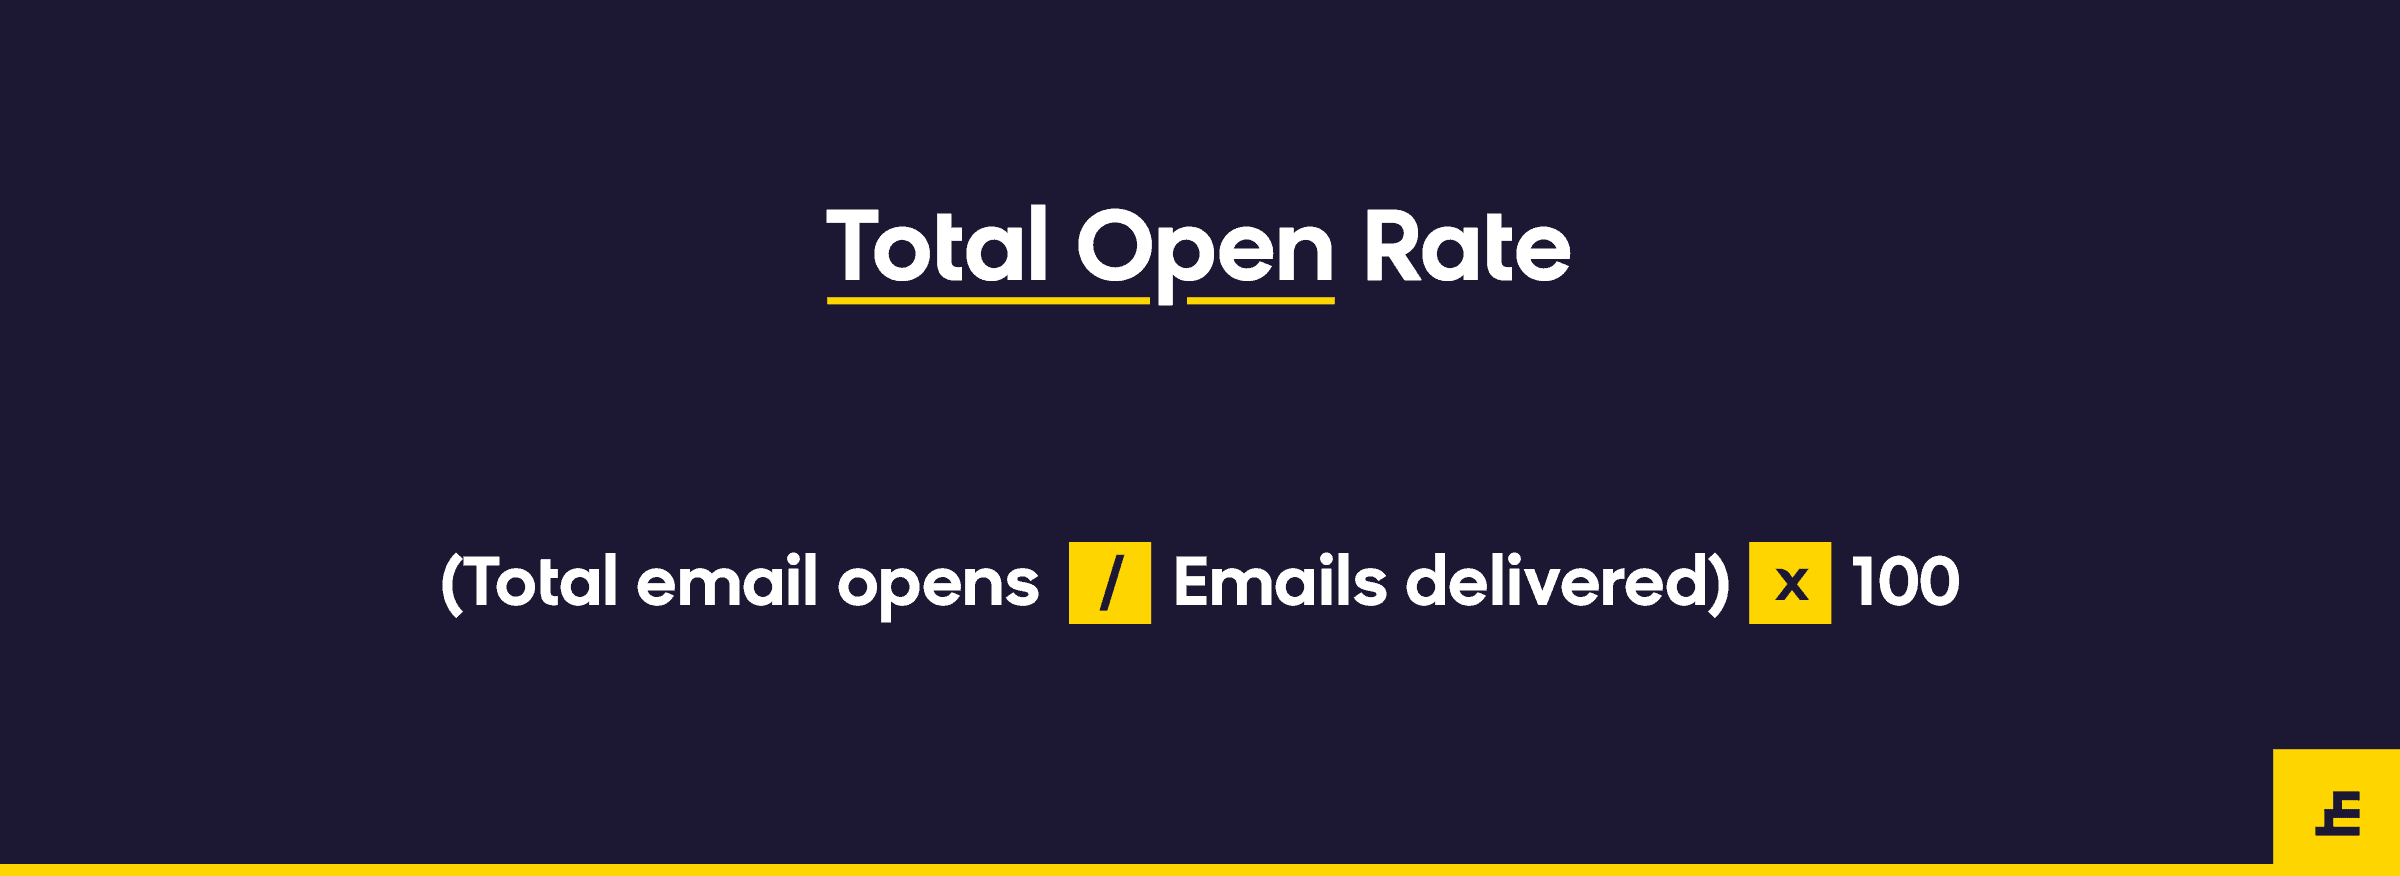 email marketing metric - total open rate